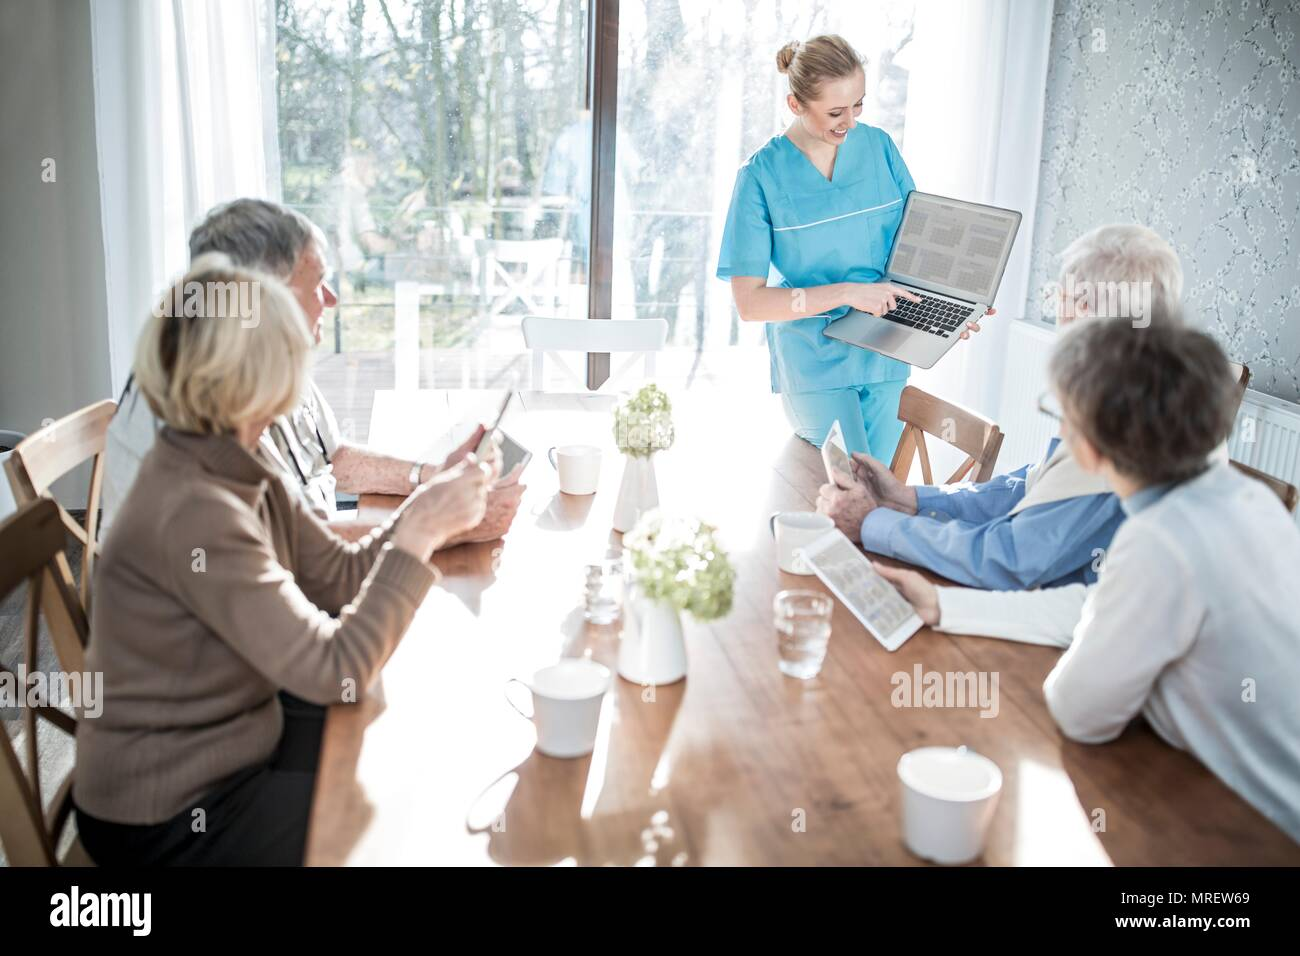 Care worker showing senior adults laptop in care home. - Stock Image